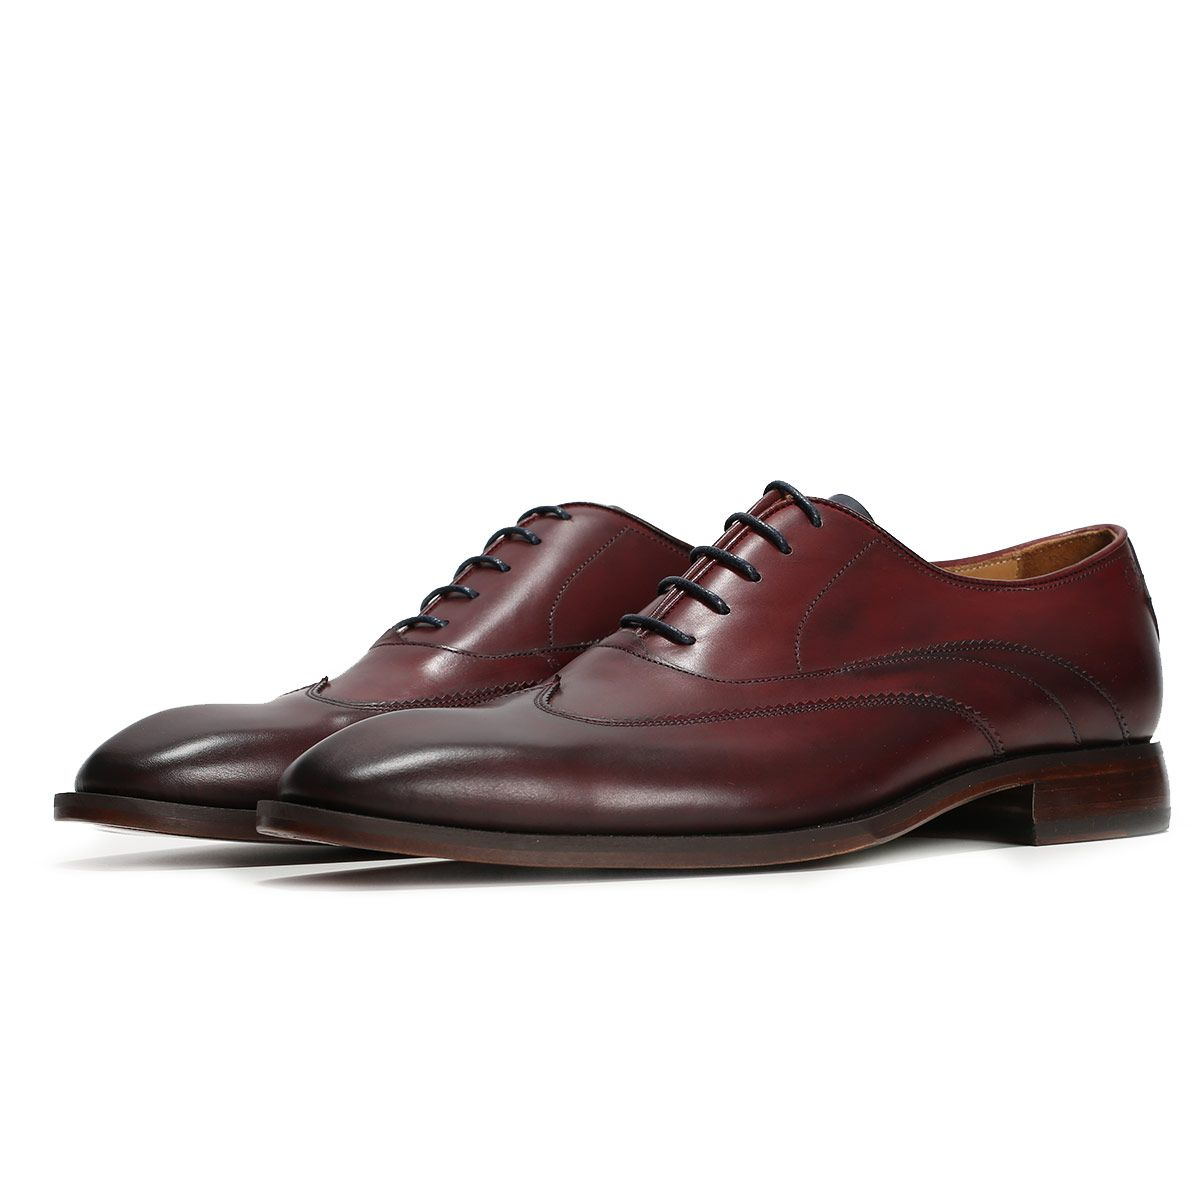 Oliver Sweeney Alassio Deep Red - Antiqued Leather Oxford Shoe